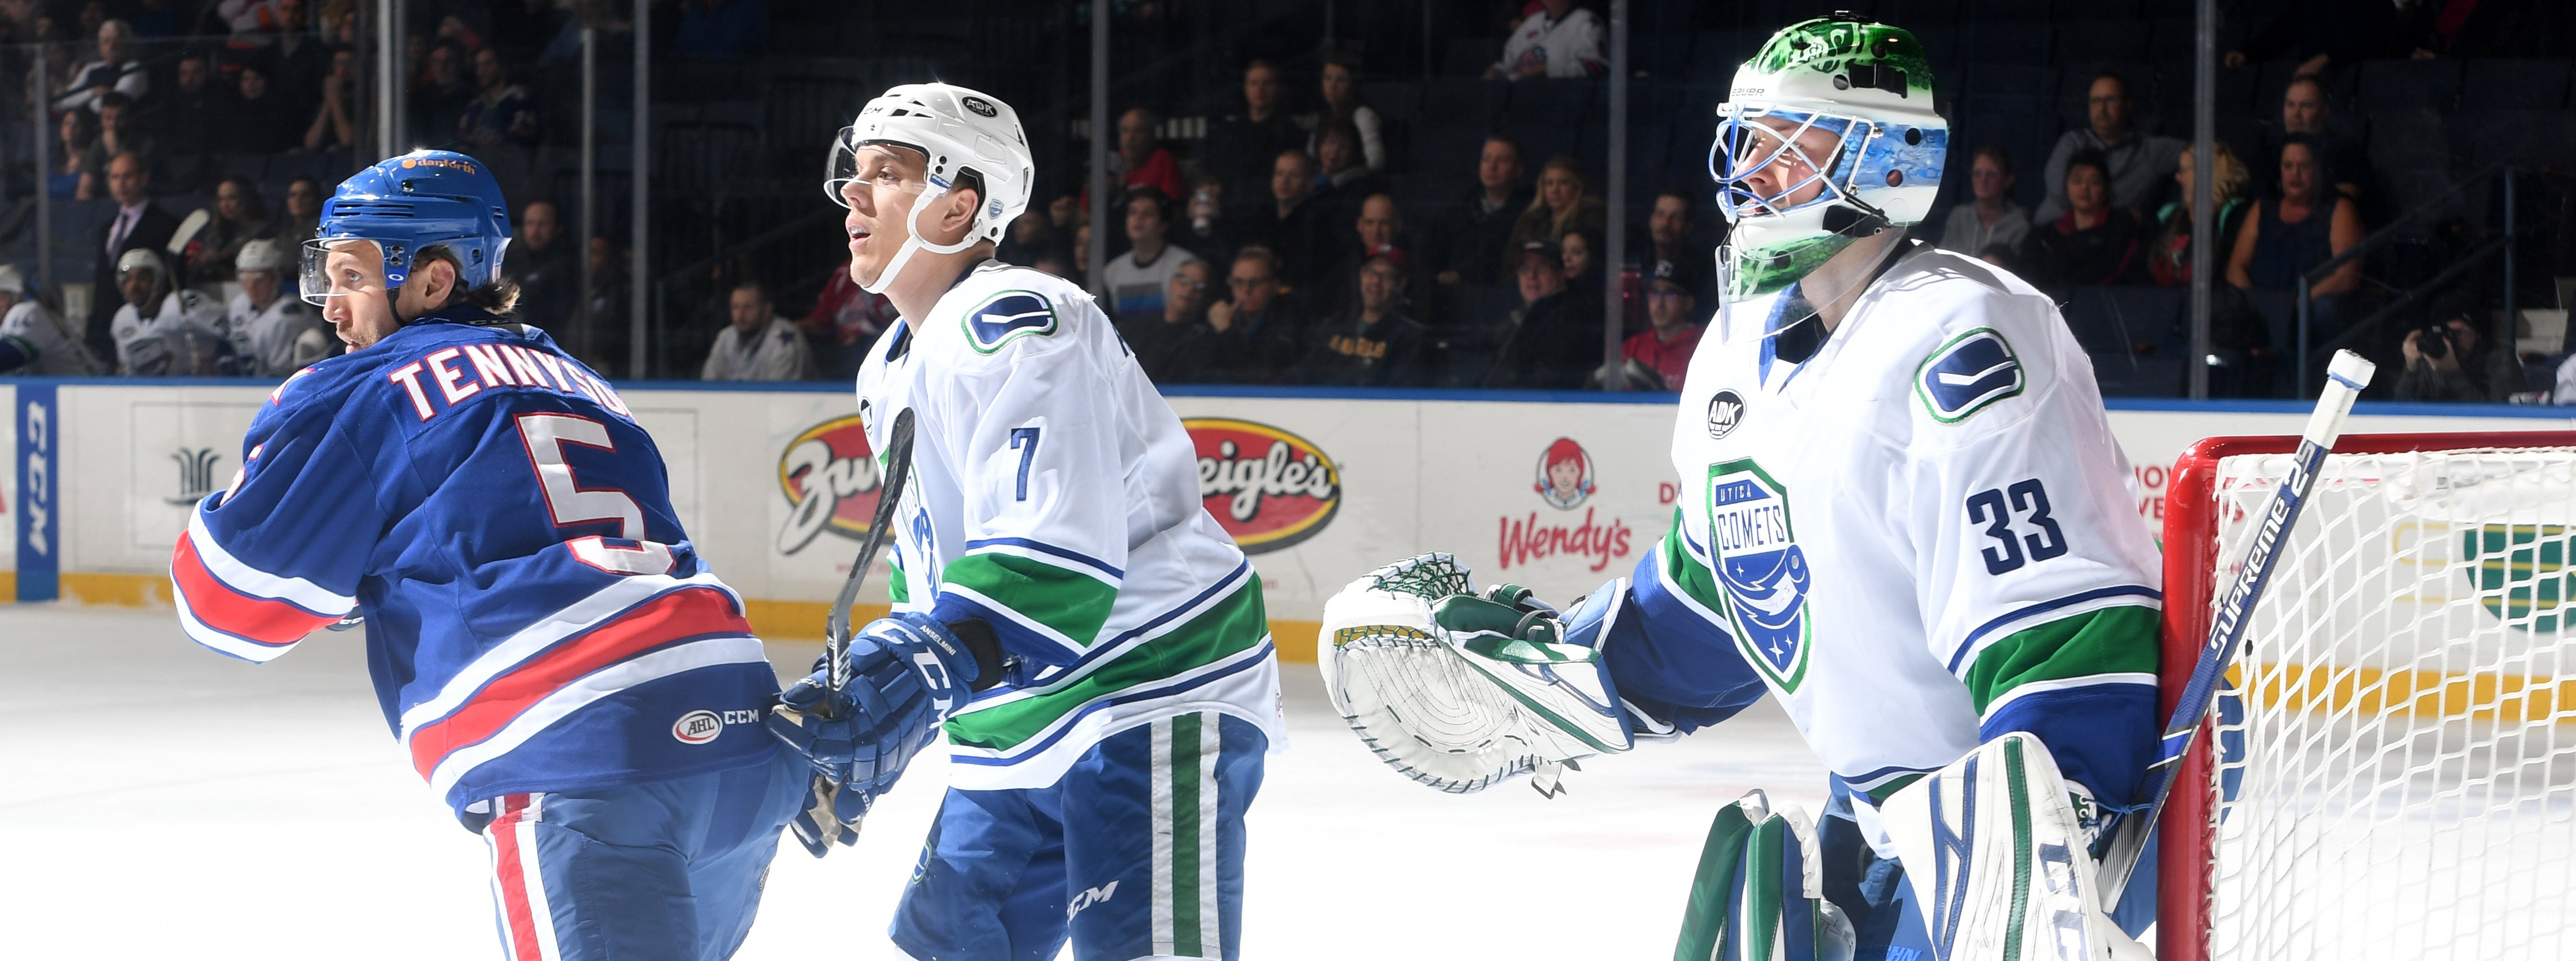 COMETS SHUTOUT IN DIVISIONAL BATTLE WITH ROCHESTER